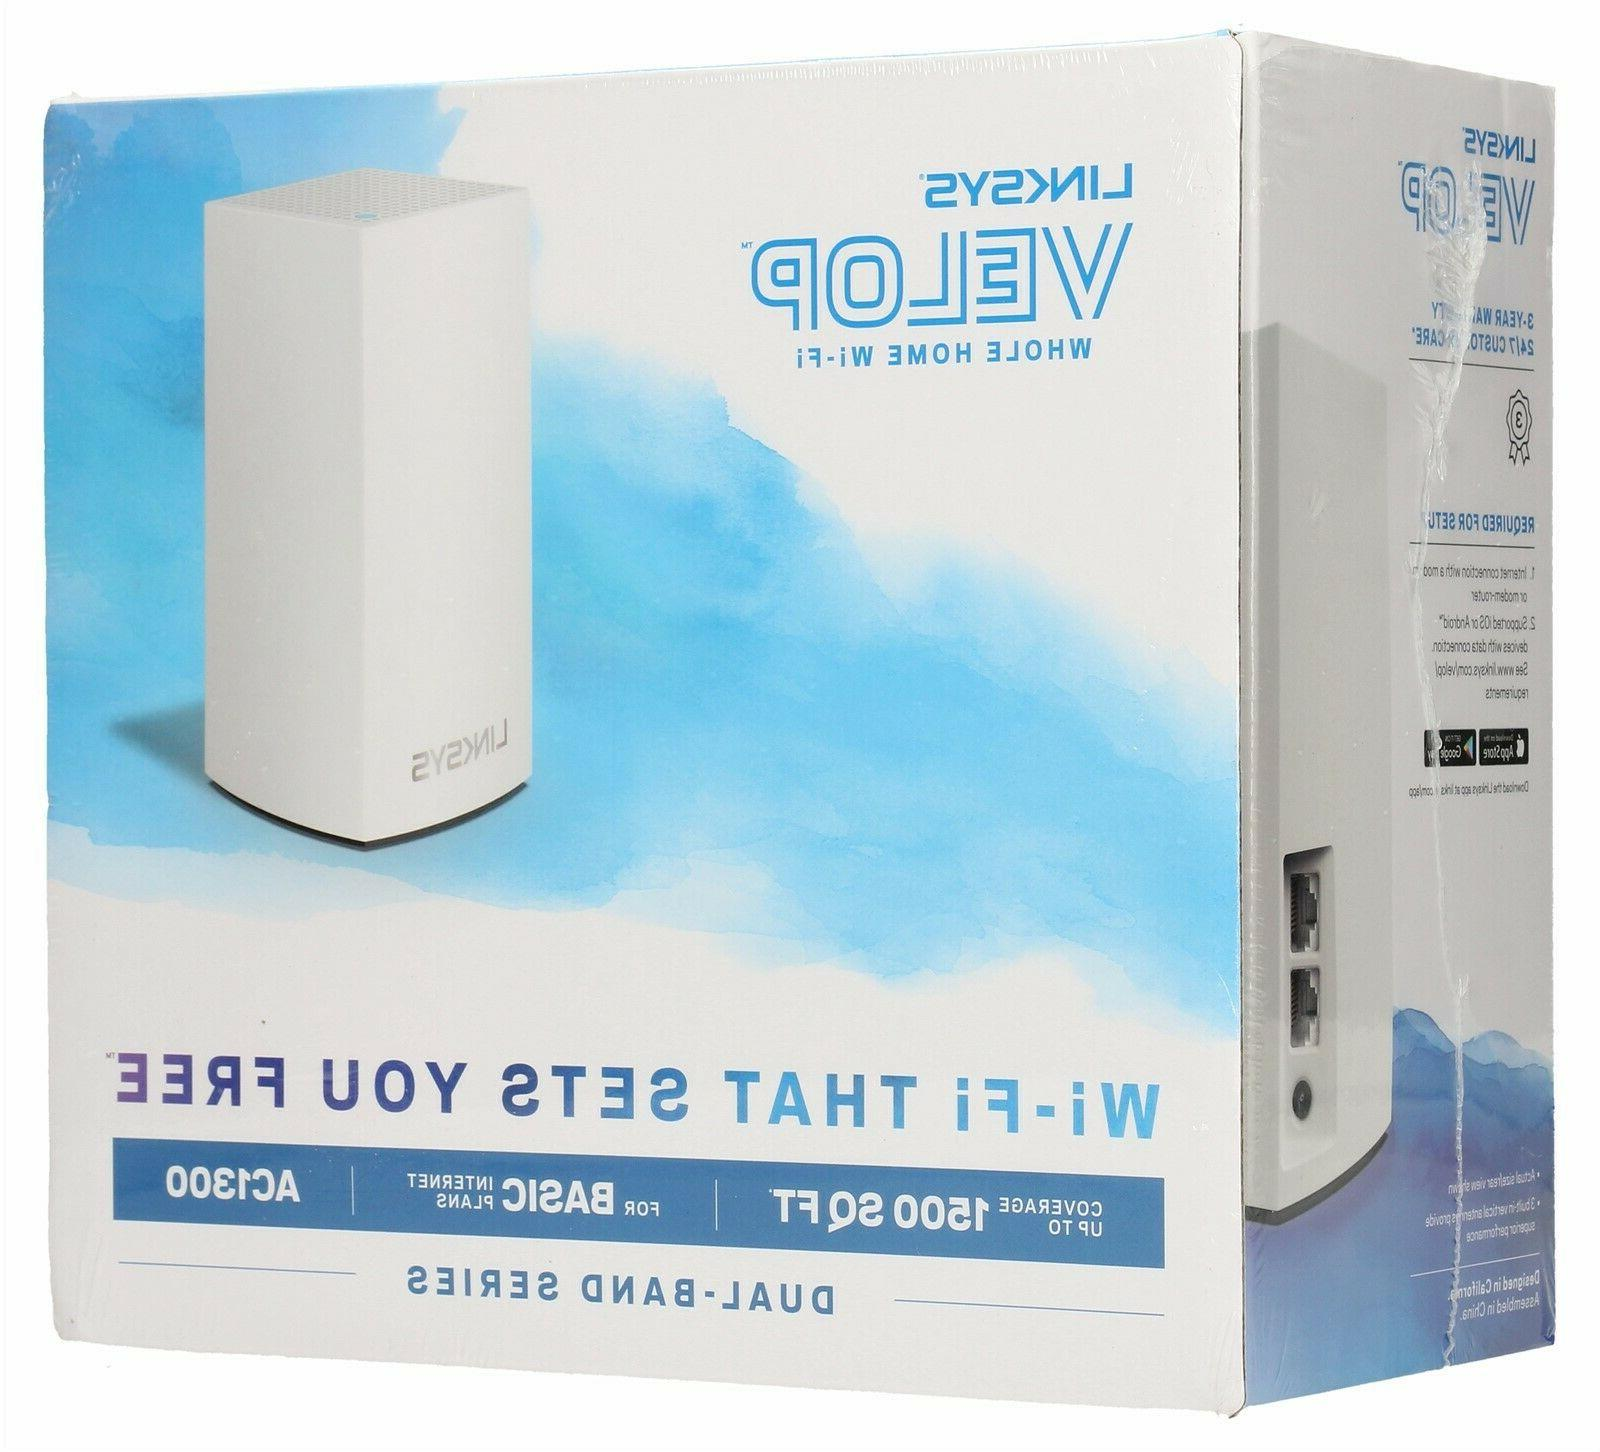 velop whole home wifi intelligent